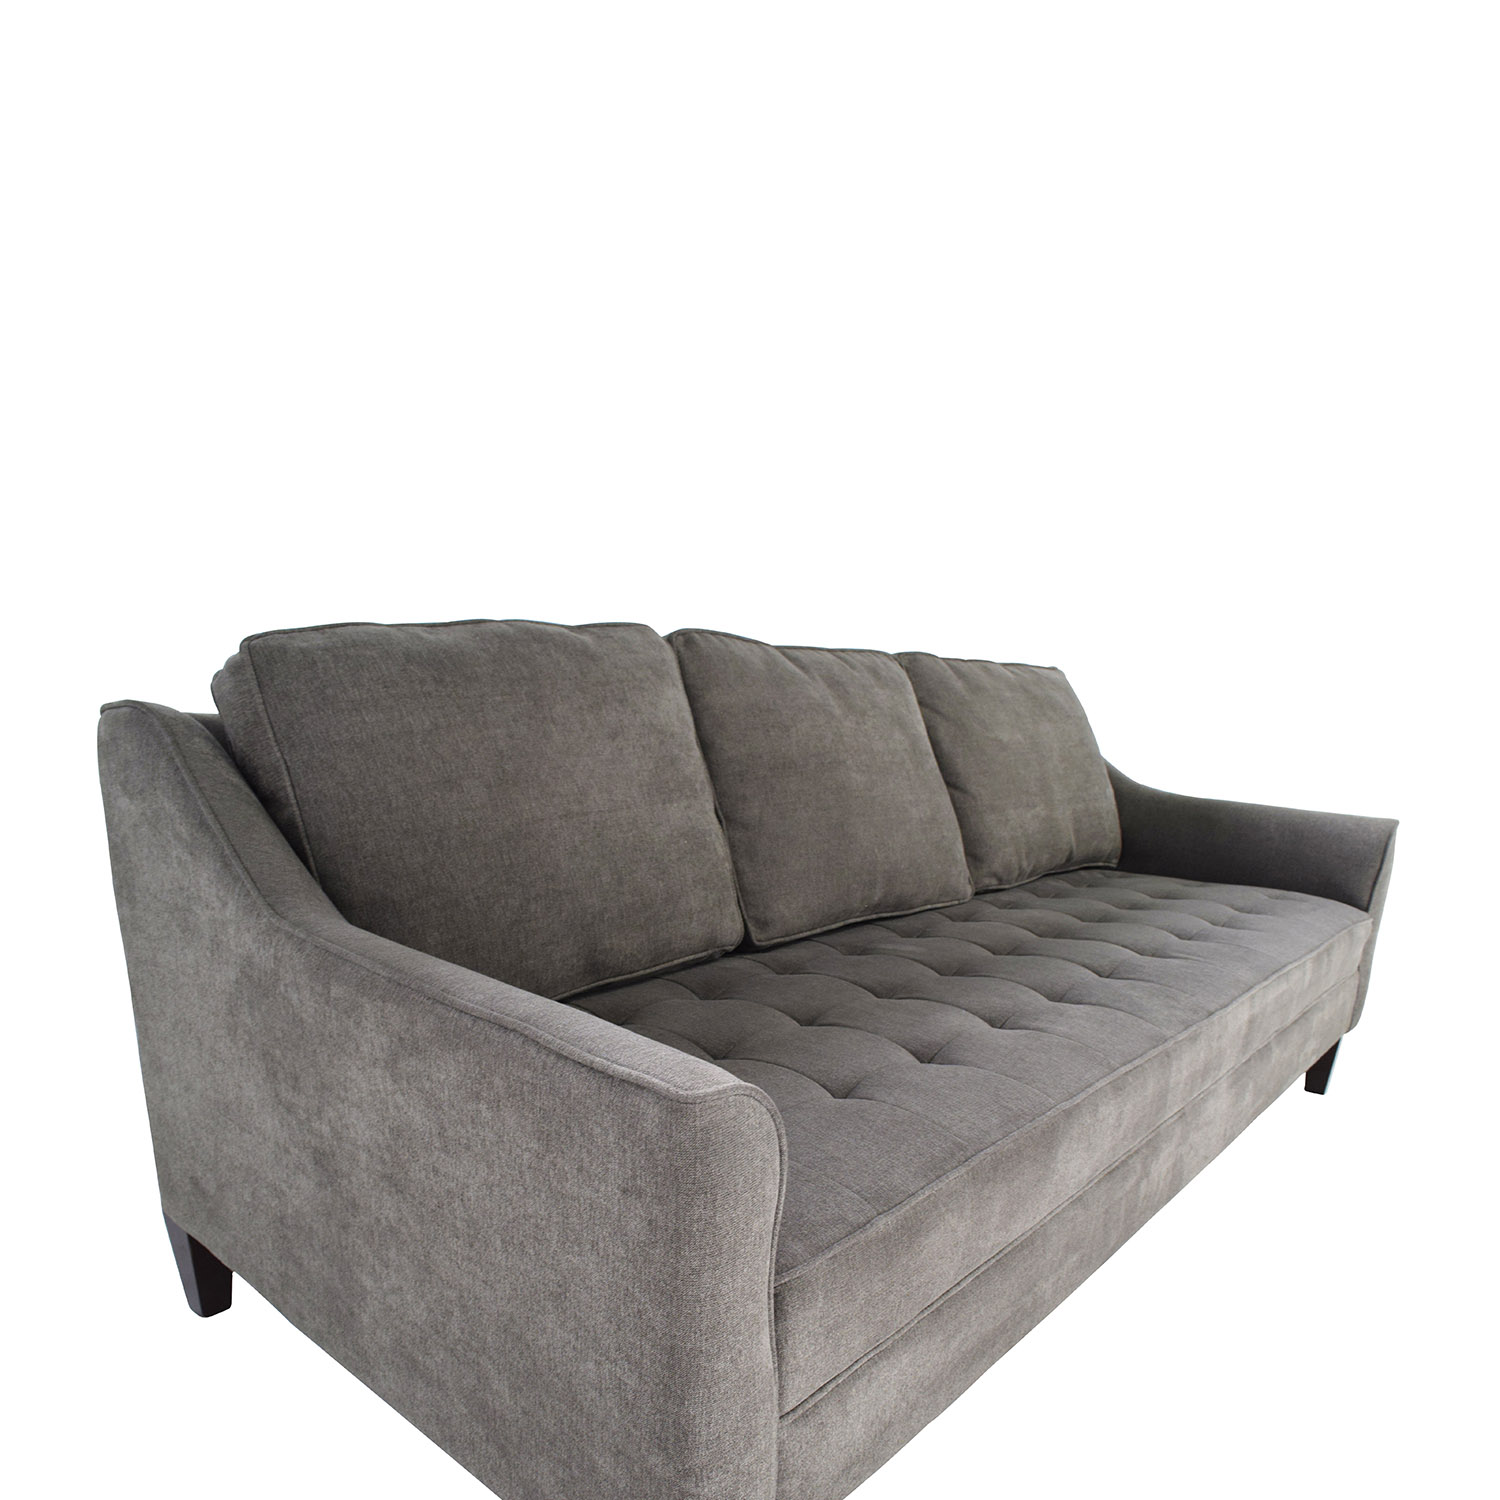 51% OFF Haverty s Haverty s Parker Sofa in Grey Sofas